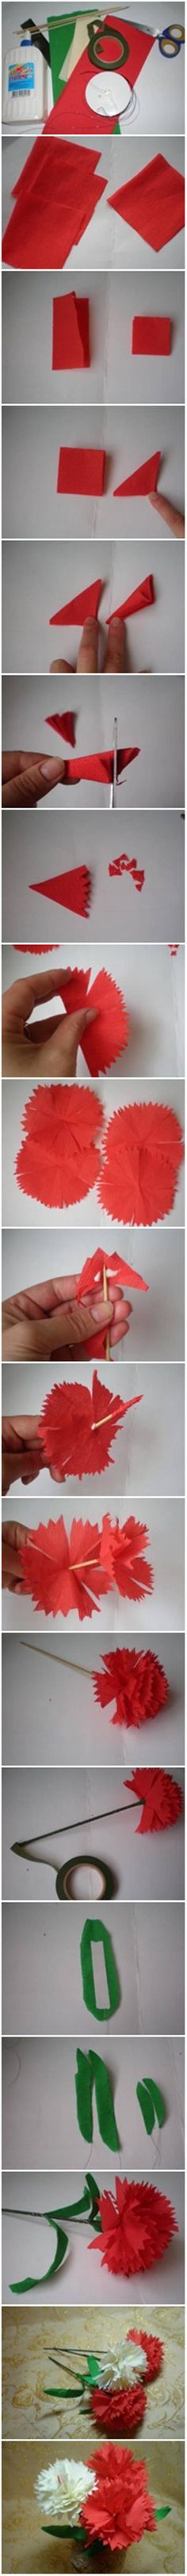 DIY Crepe Paper Carnation #craft #decor #paper #flower